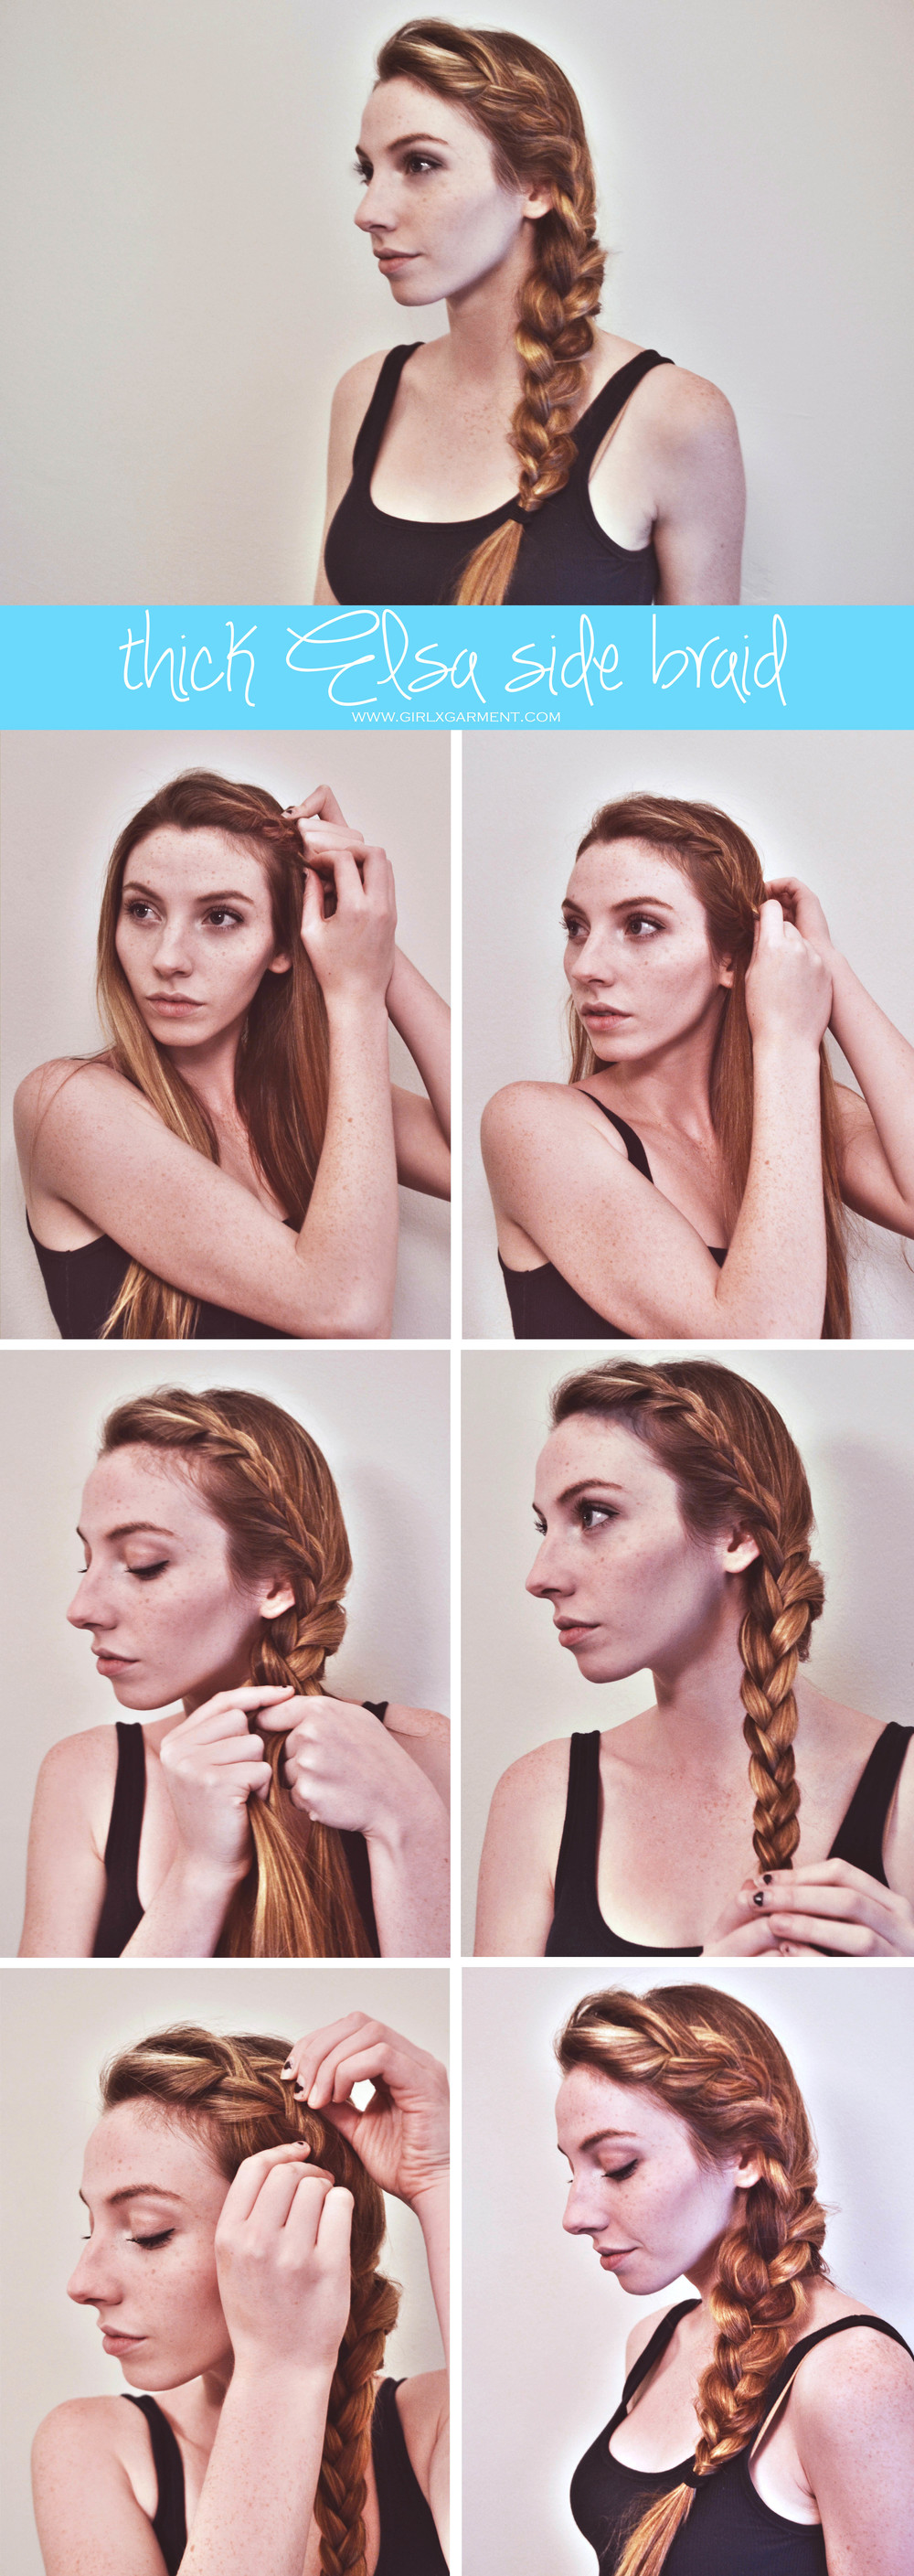 Thick Elsa Side Braid | Girl x Garment hair